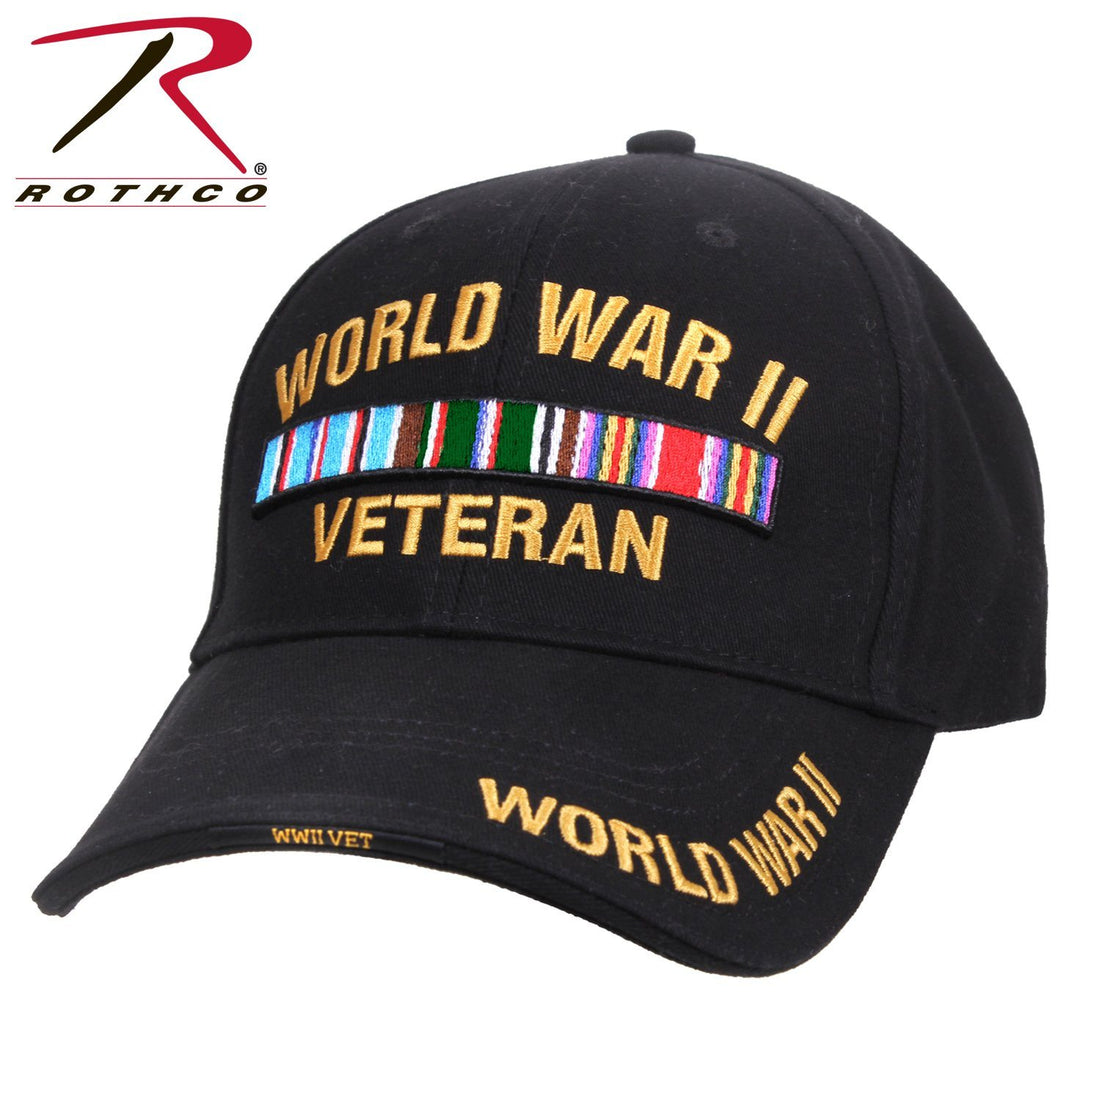 Rothco WWII Veteran Deluxe Low Profile Cap